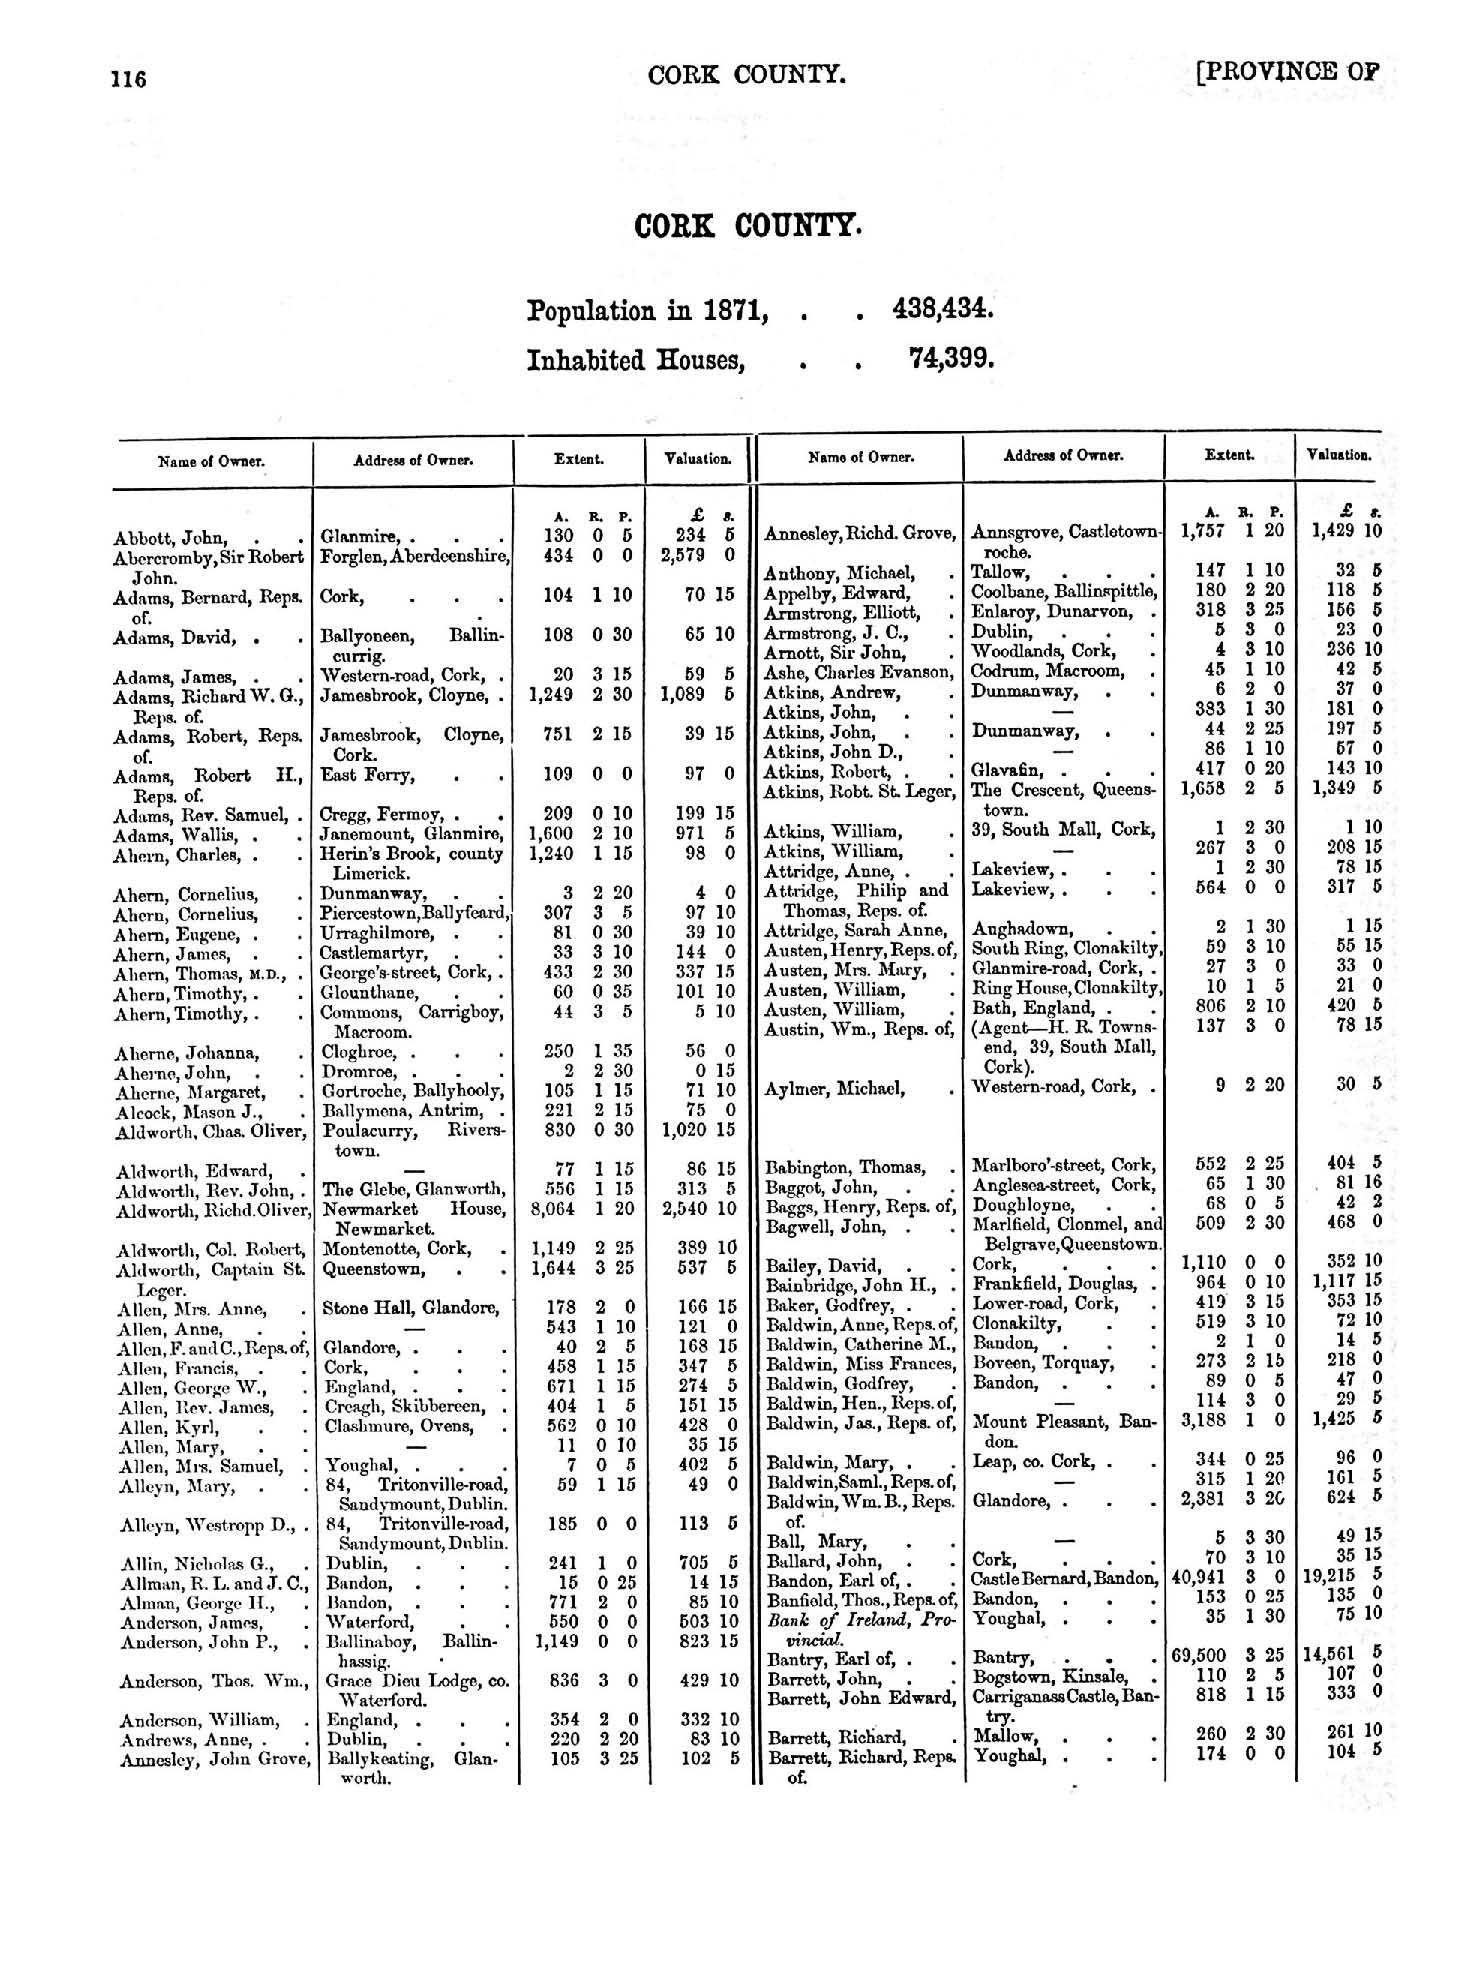 Return of Owners of Land, 1876 page 116 - click to open larger version in a new window